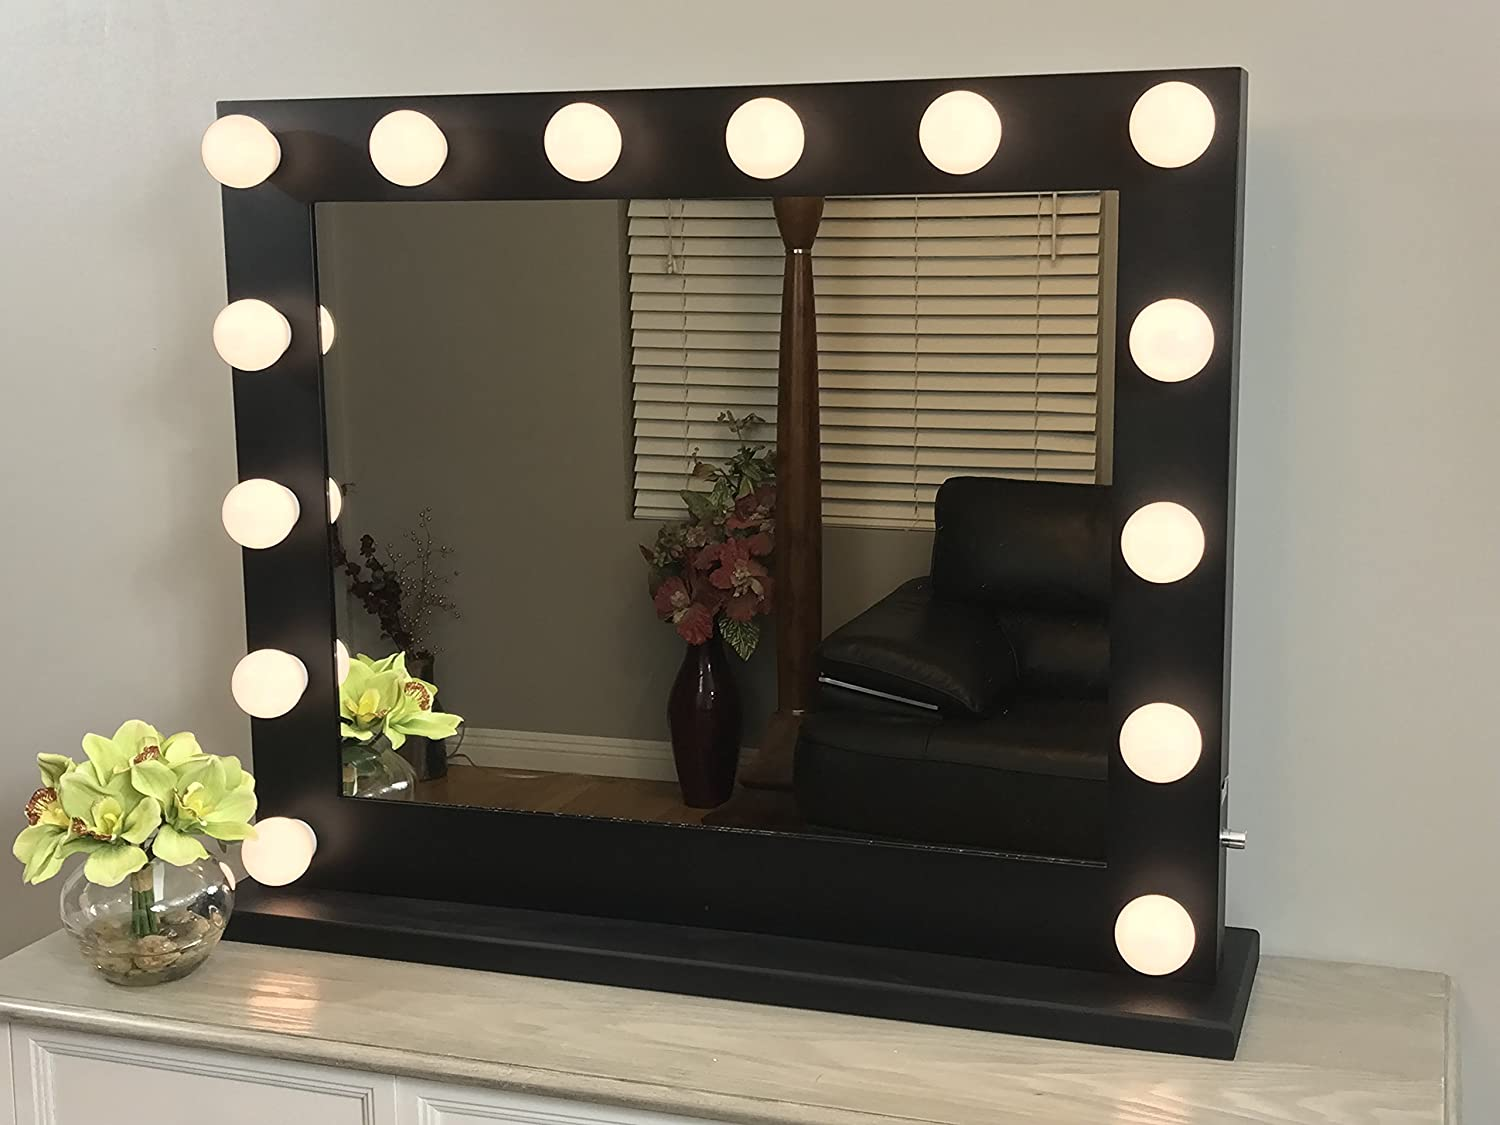 Black Lighted Hollywood Makeup Vanity Mirror with Dimmer,Large Size 31 x 25, Plug-in double Electric and USB Ports with LED Light bulbs included, Tabletop or Wall Mounted Vanity …